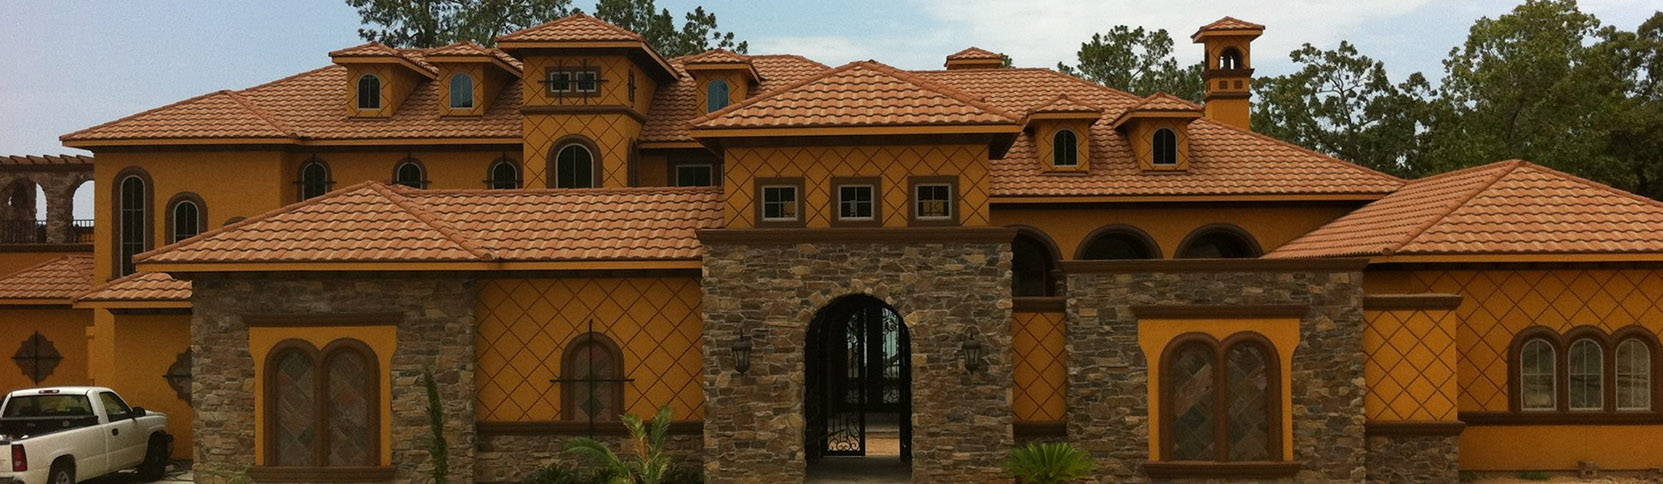 Fairclaims Roofing